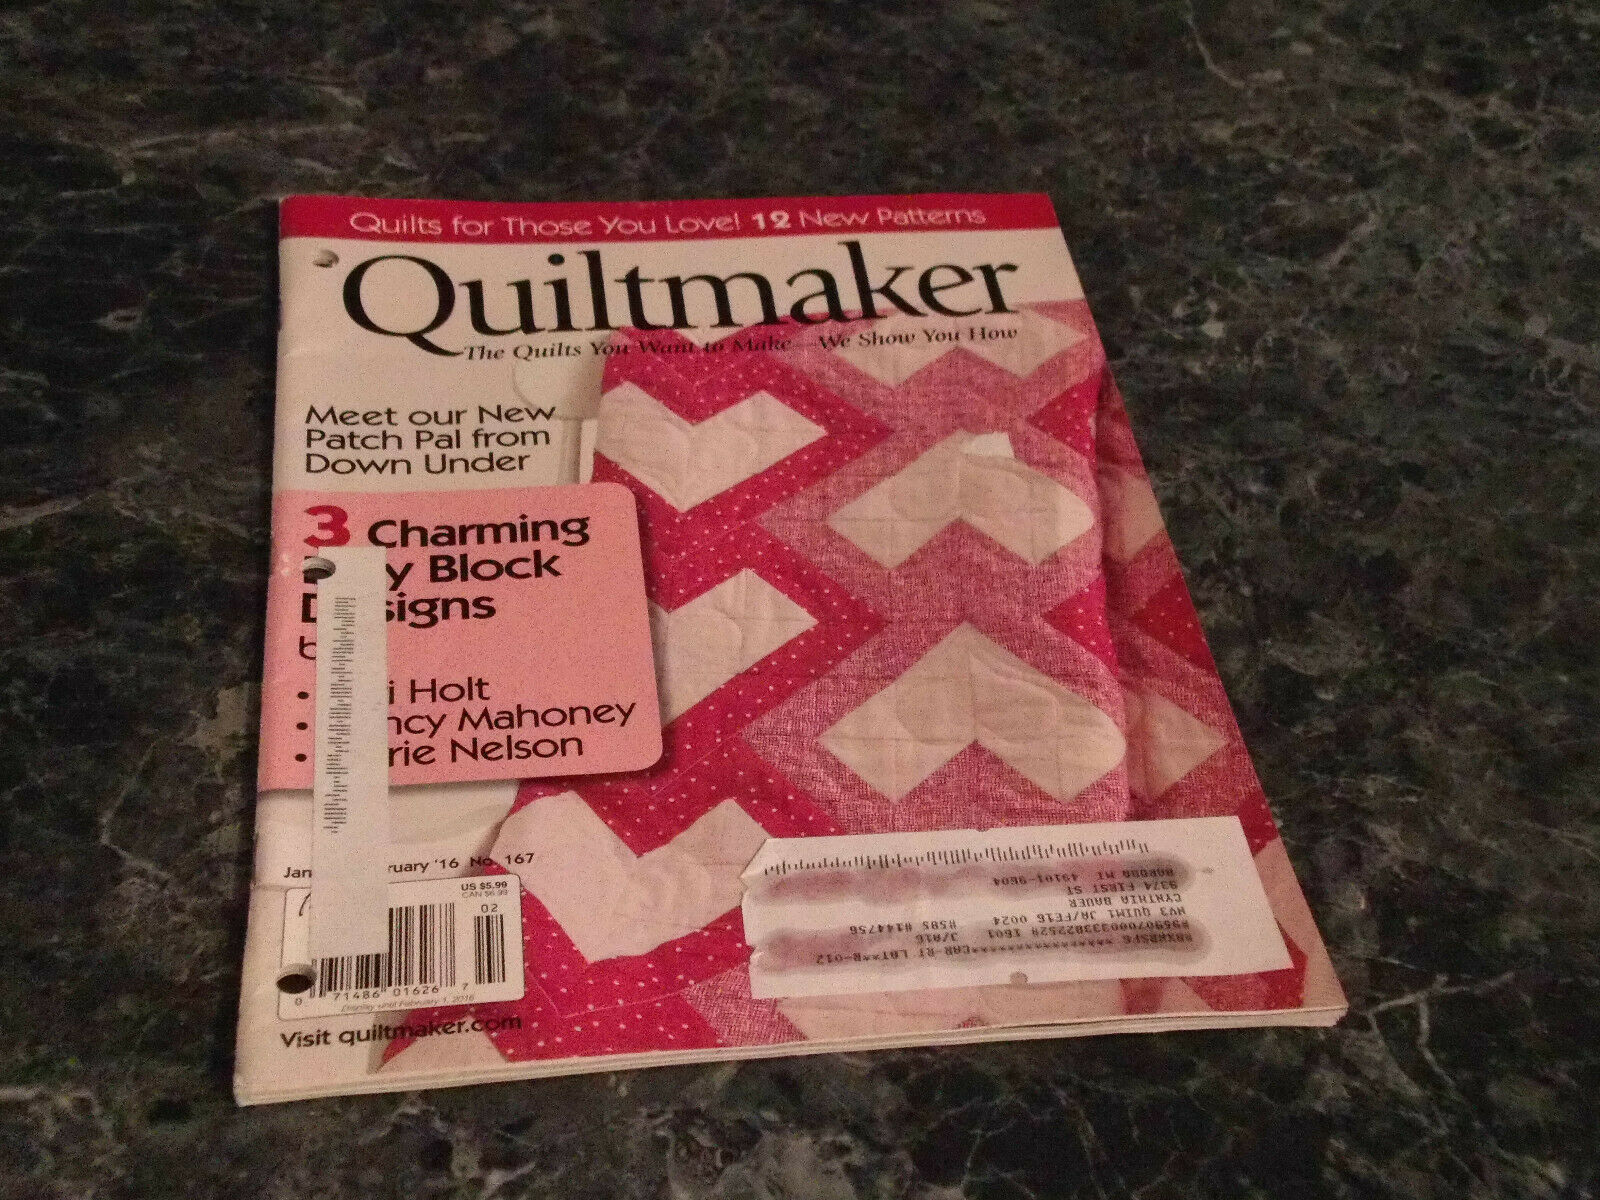 Quiltmaker The Quilts you want to Make January February 2016 No 167 Prairie Sky - $2.99